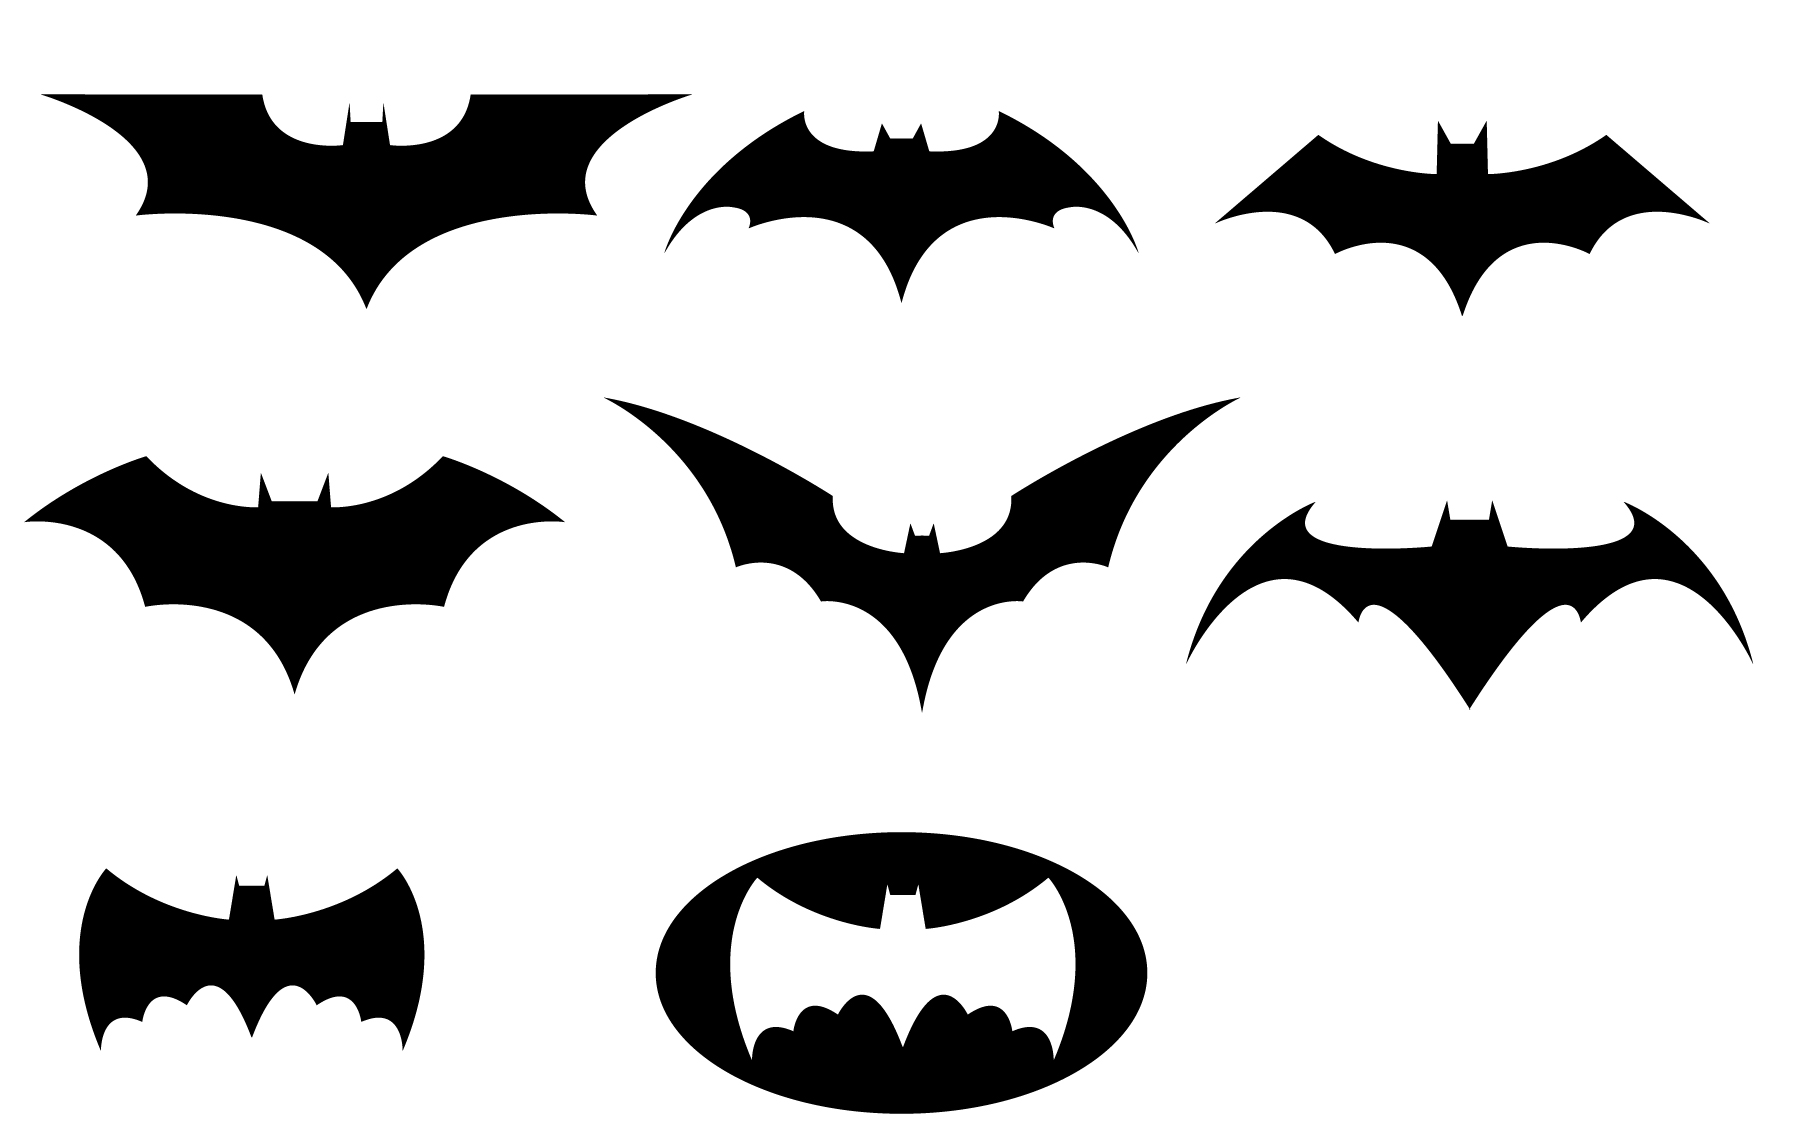 Batman running paint logo clipart images gallery for Free.